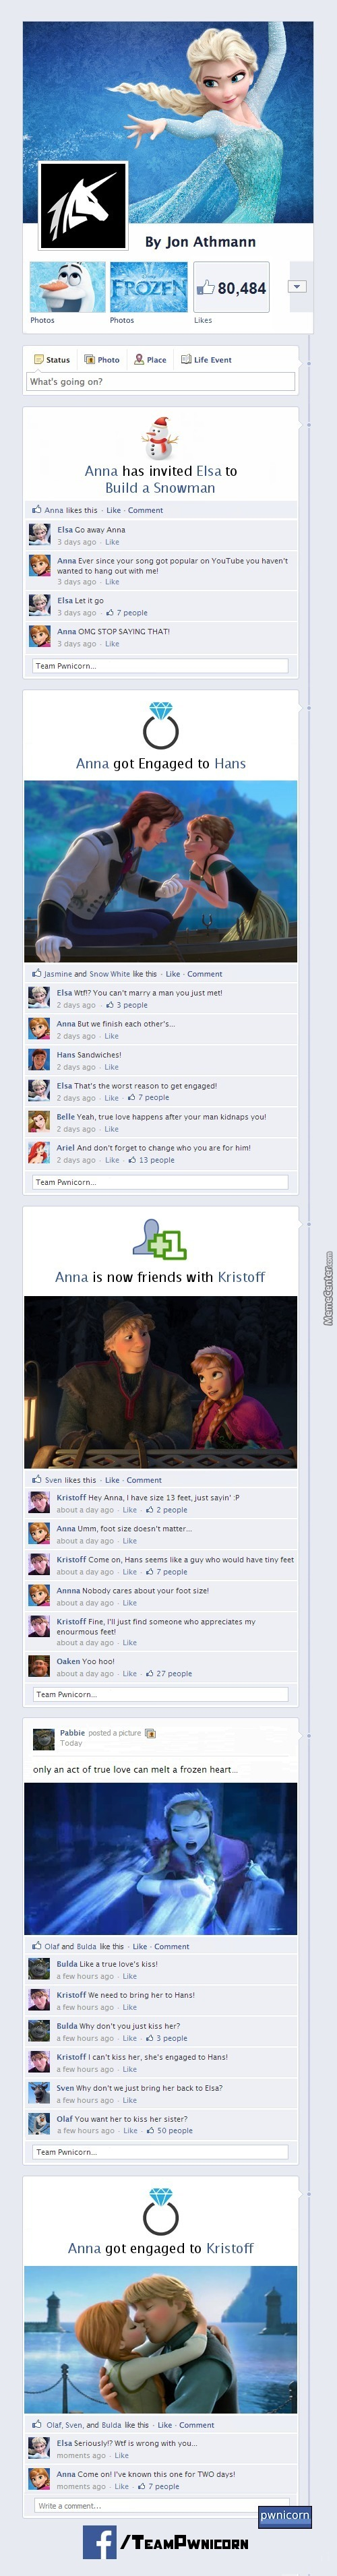 Frozen On Facebook